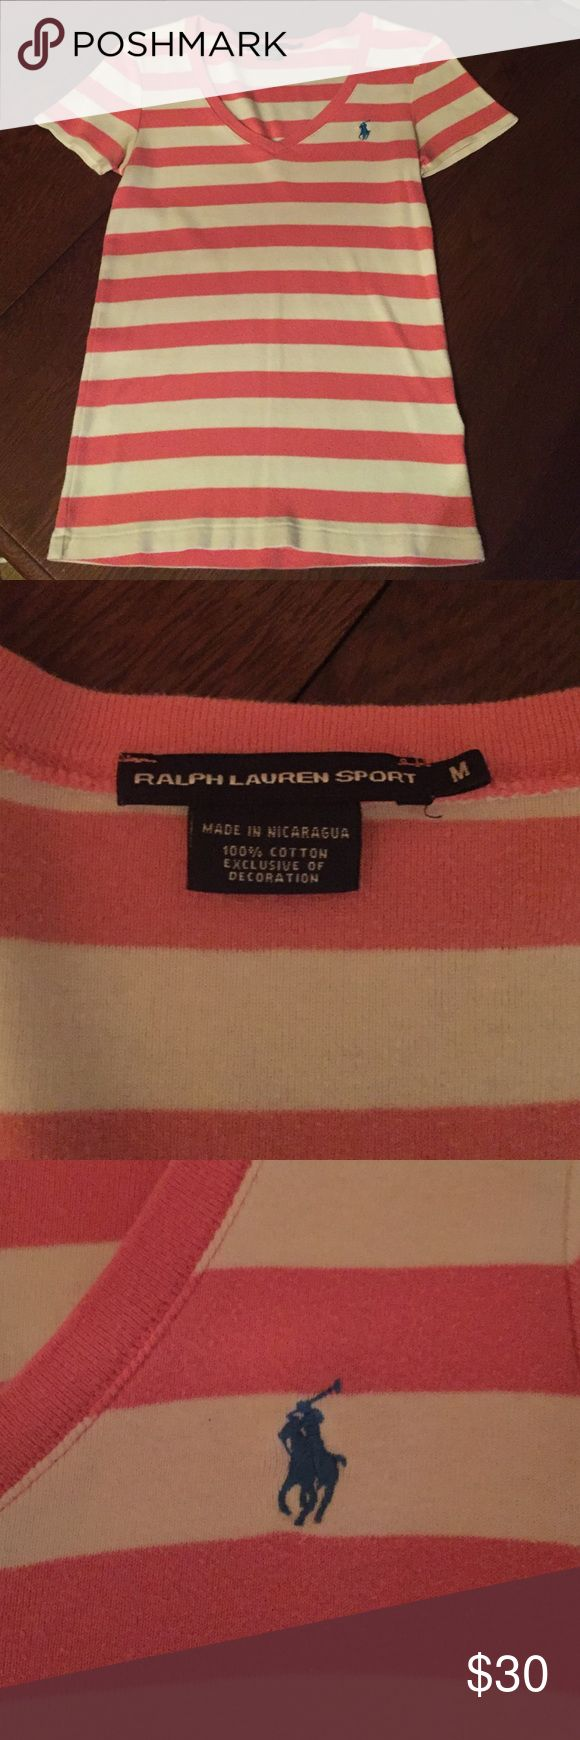 Ralph Laurn Sport Gentle used, but no picks or stains. Comes from a smoke free, animal free house! In you would like more information on this top please feel free to leave a comment! Ralph Lauren Tops Tees - Short Sleeve